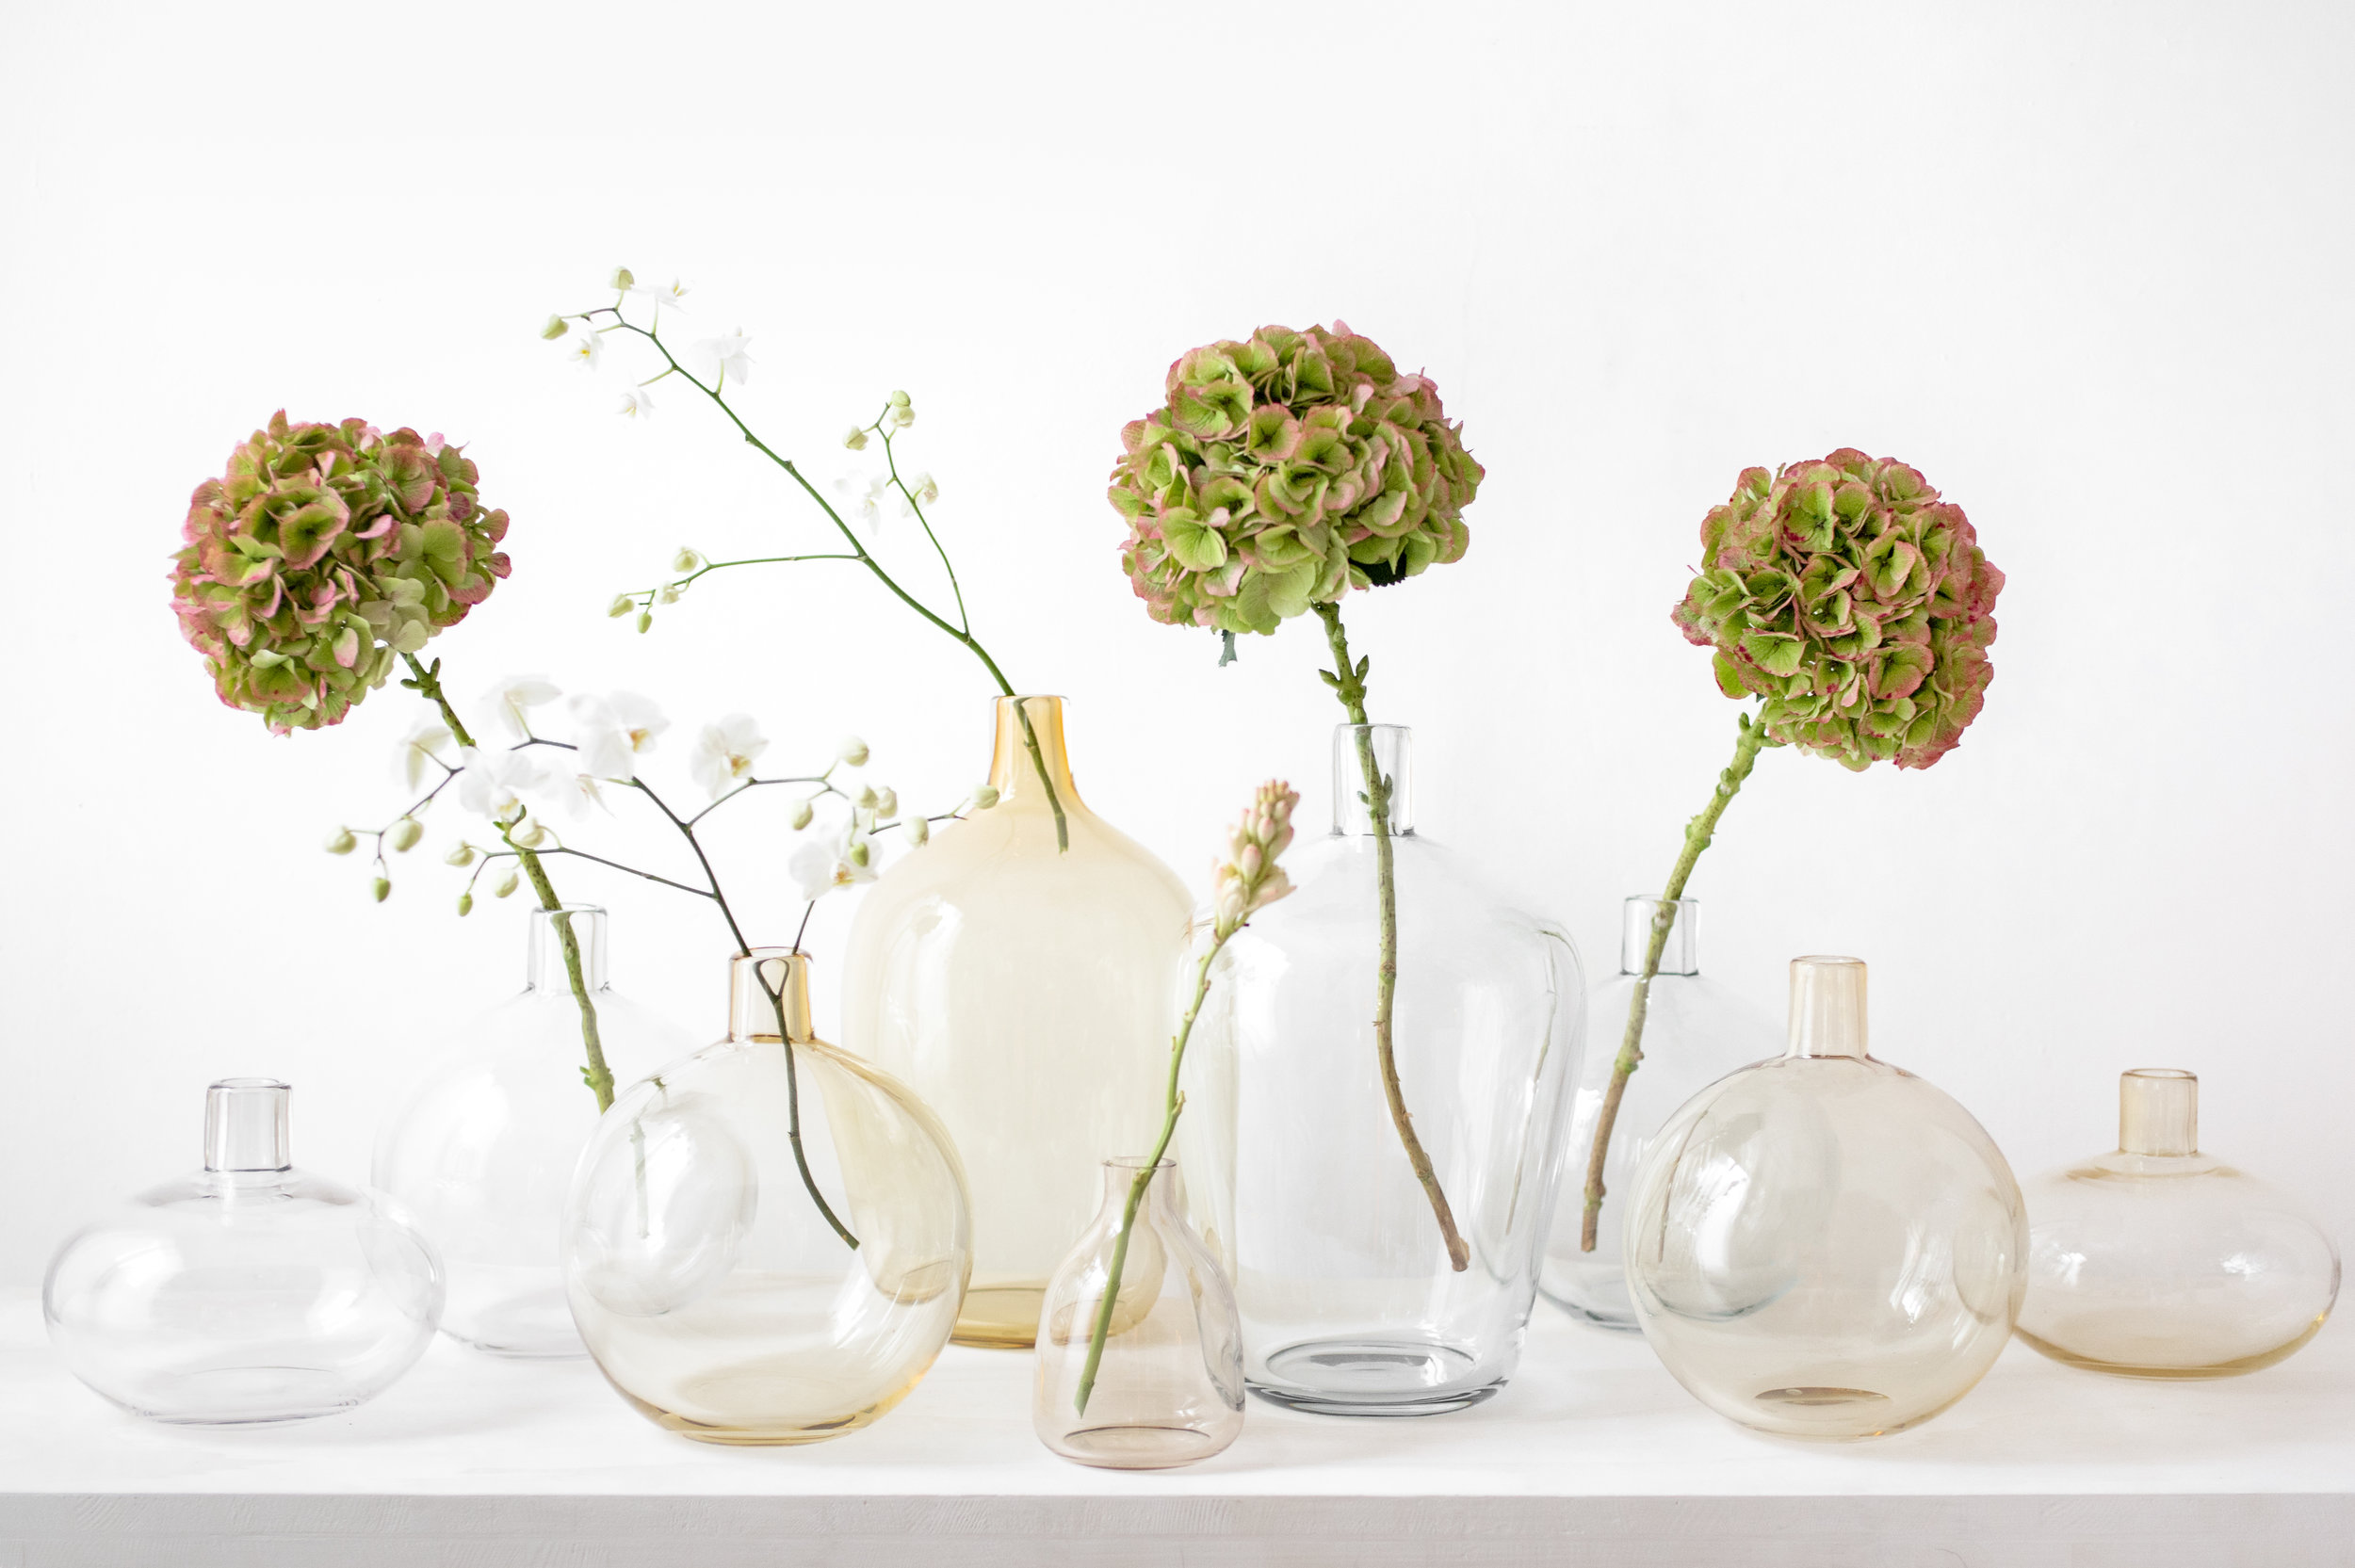 Yali Glass Design Vitrine #1 2018 Monastiri and Kasa Bottiglia flower vases